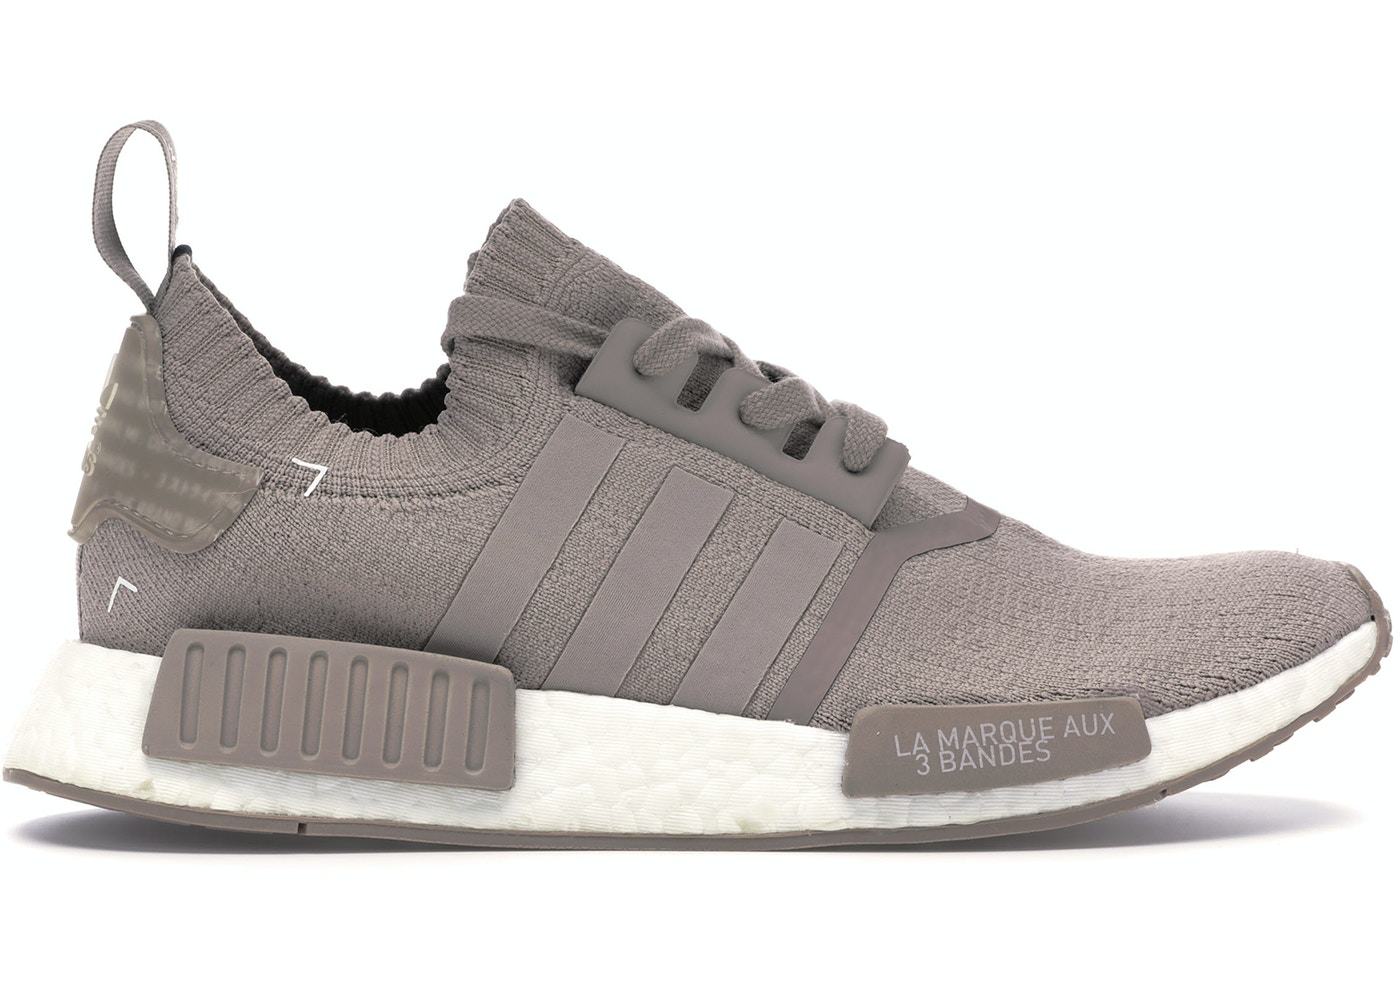 aac9db7d7108 adidas NMD R1 French Beige - S81848